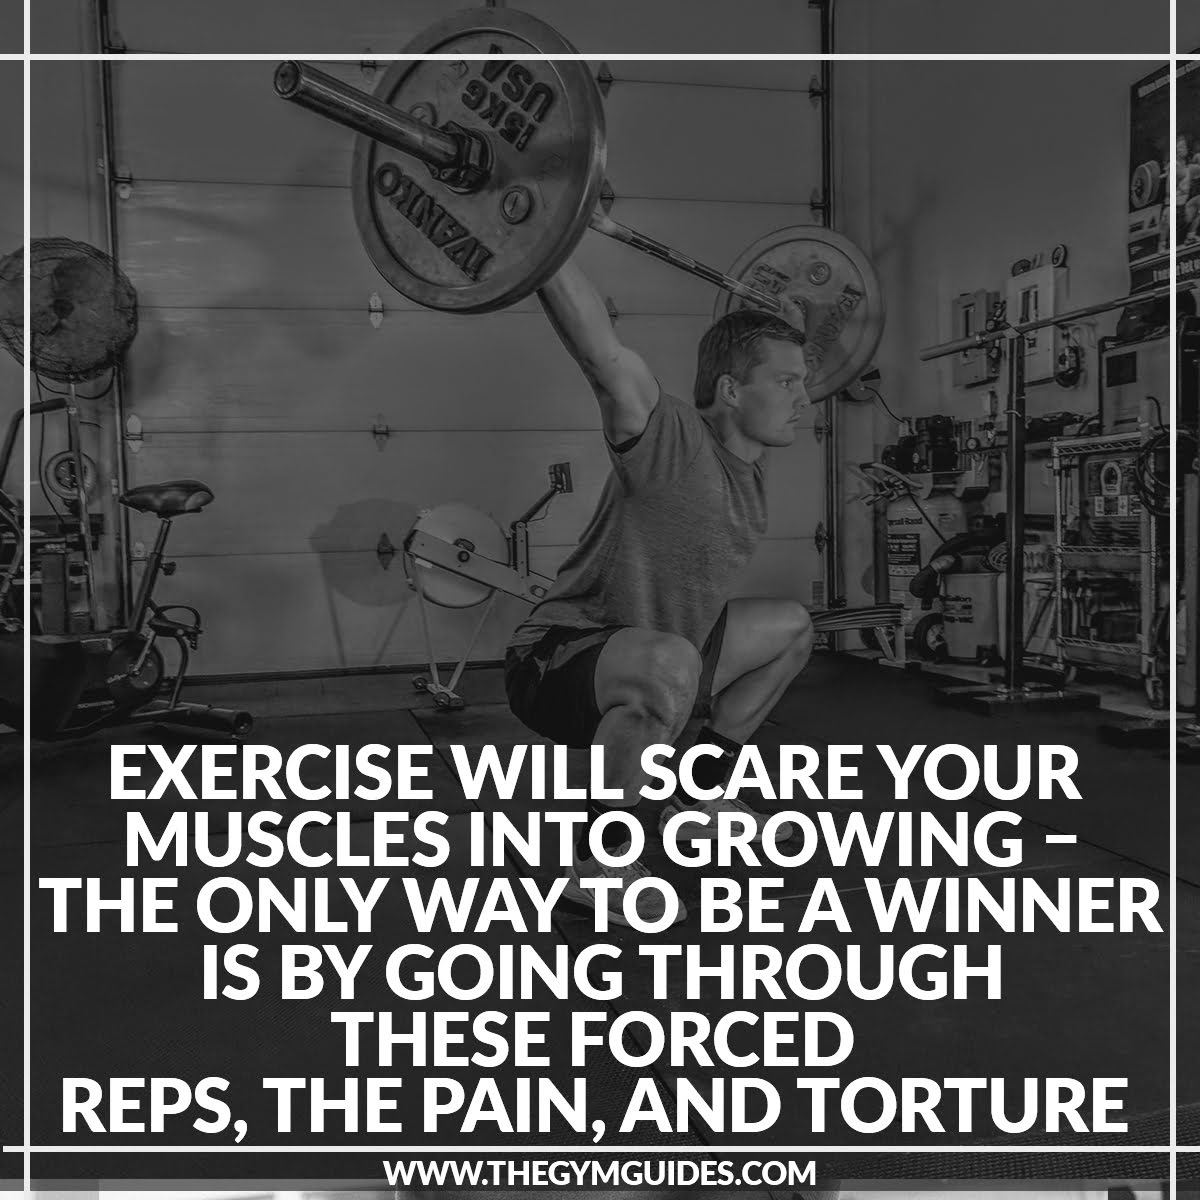 Exercise will SCARE your Muscles into Growing – the only way to be a winner is by going through these forced reps, the pain, and torture